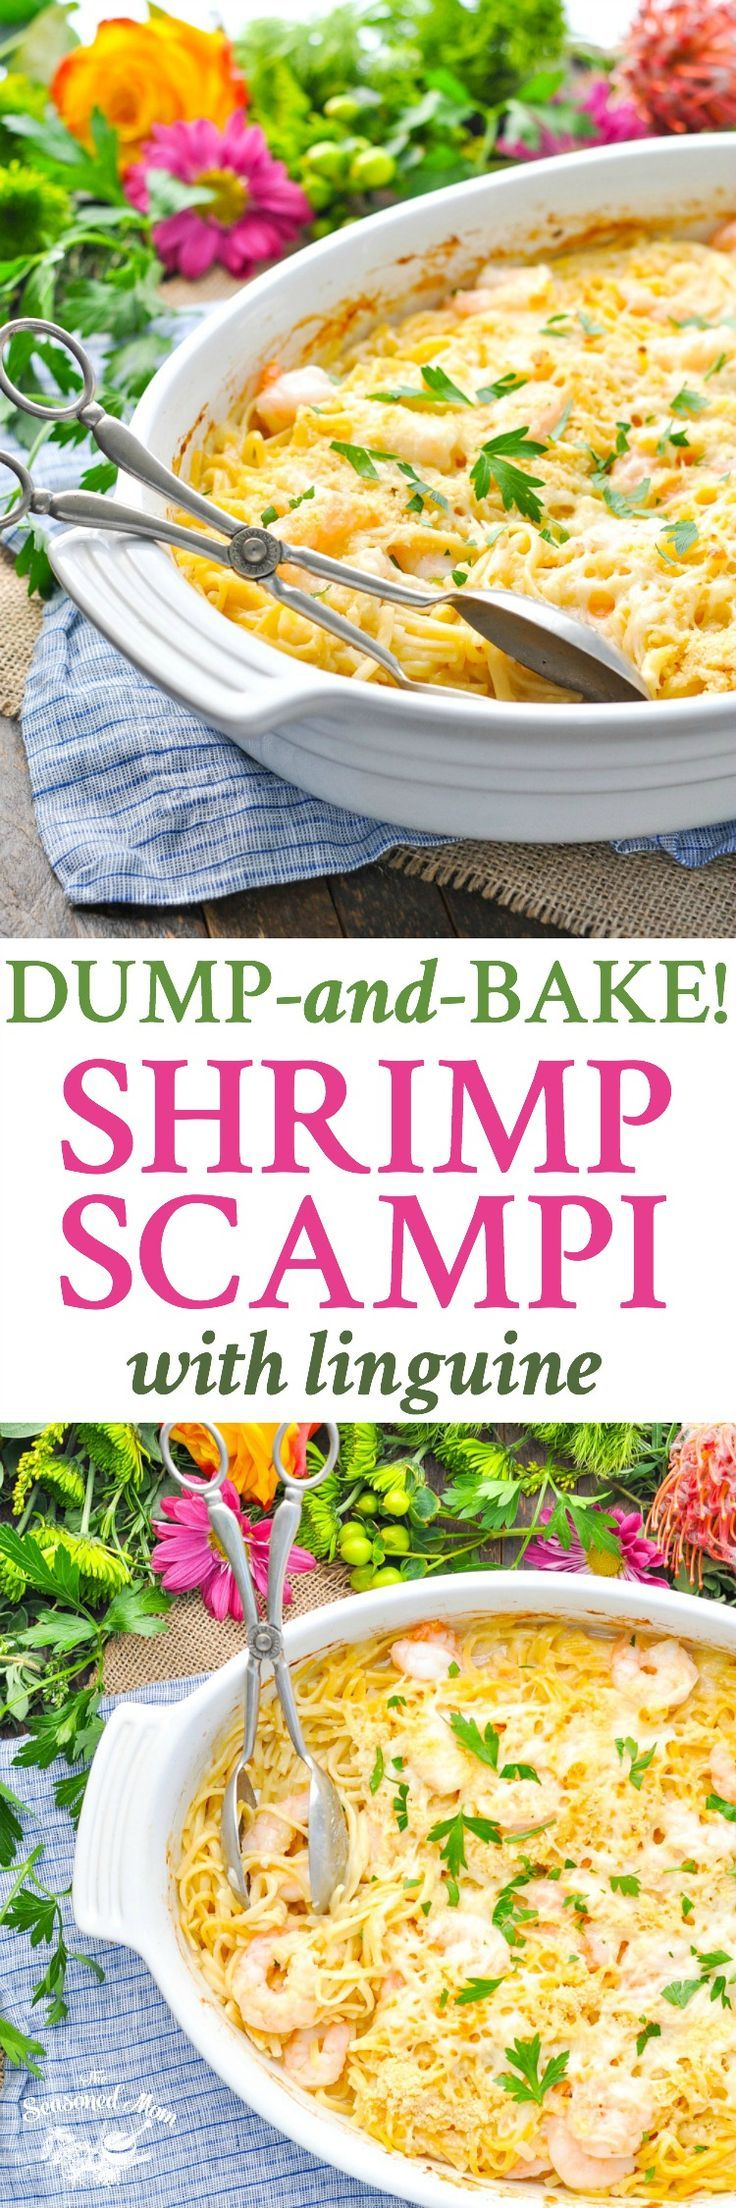 You don't have to boil the pasta or pre-cook the shrimp for this quick, easy, and delicious Dump-and-Bake Shrimp Scampi with Linguine! Easy Dinner Recipes | Shrimp Recipes | Pasta Recipes | Seafood Recipes #seafood #shrimp #pasta #dinner